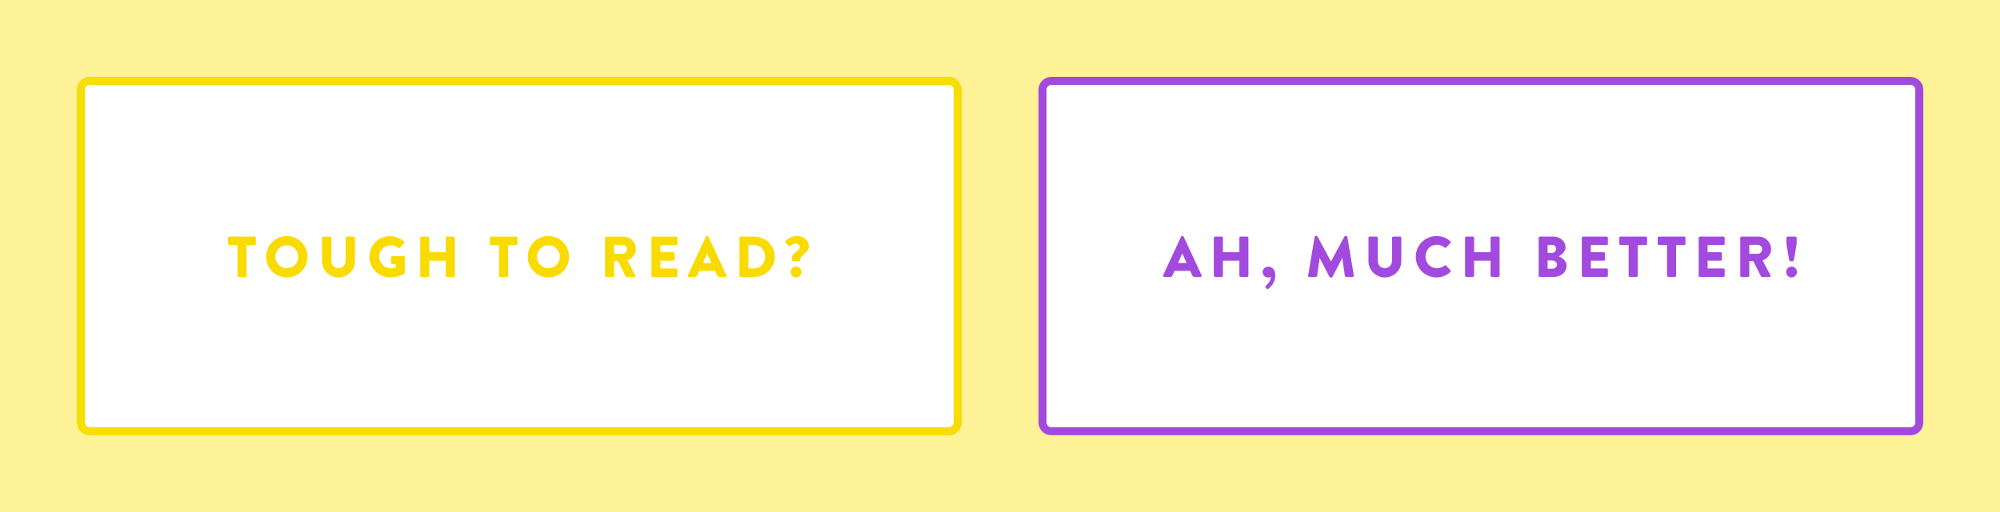 A hard-to-see low contrast button next to an easy-to-see high contrast button to give context.